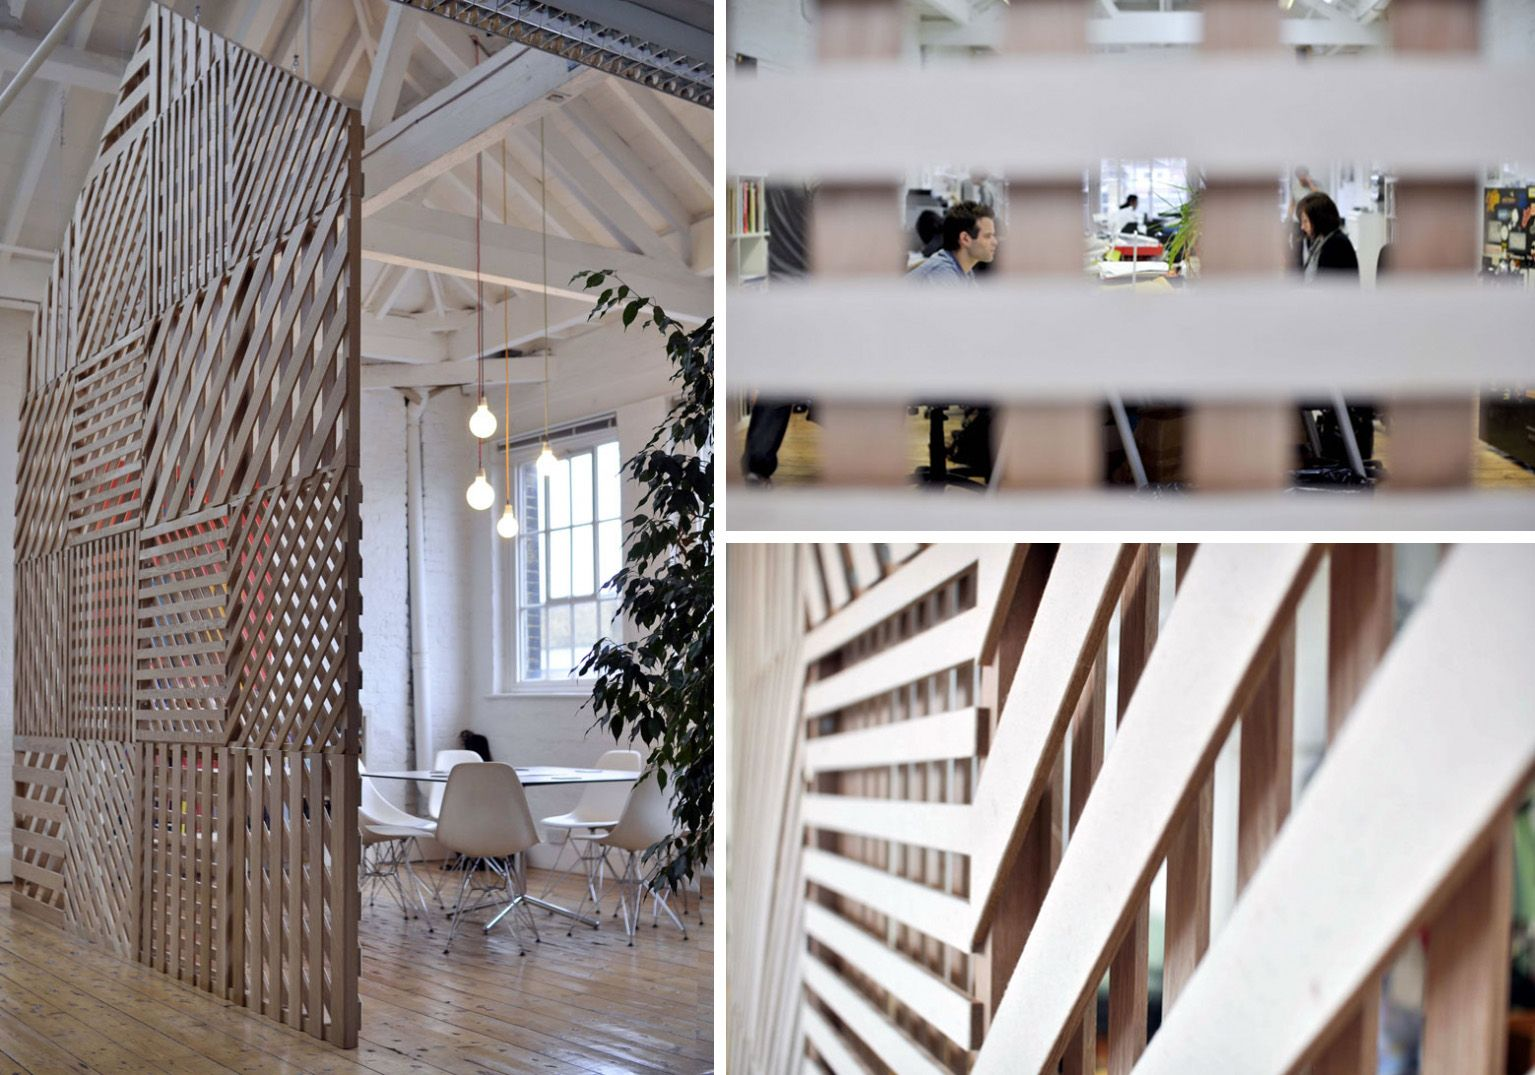 Cool Room Divider Ideas richard shed meetingspace yatzer timber partition | conference